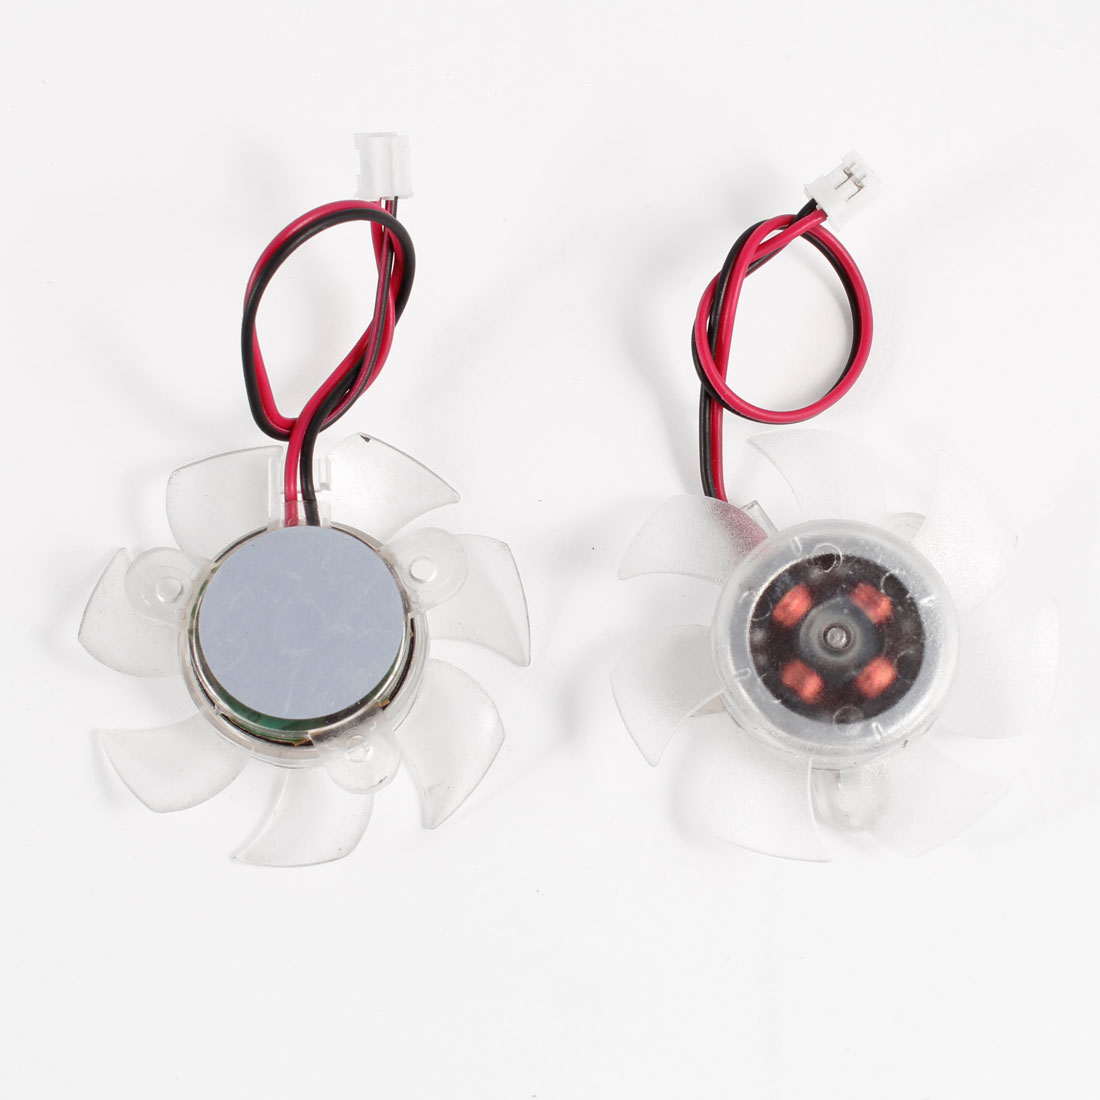 2 Pcs 45mm Clear Plastic PC VGA Cooler Video Card Cooling Fan 12VDC